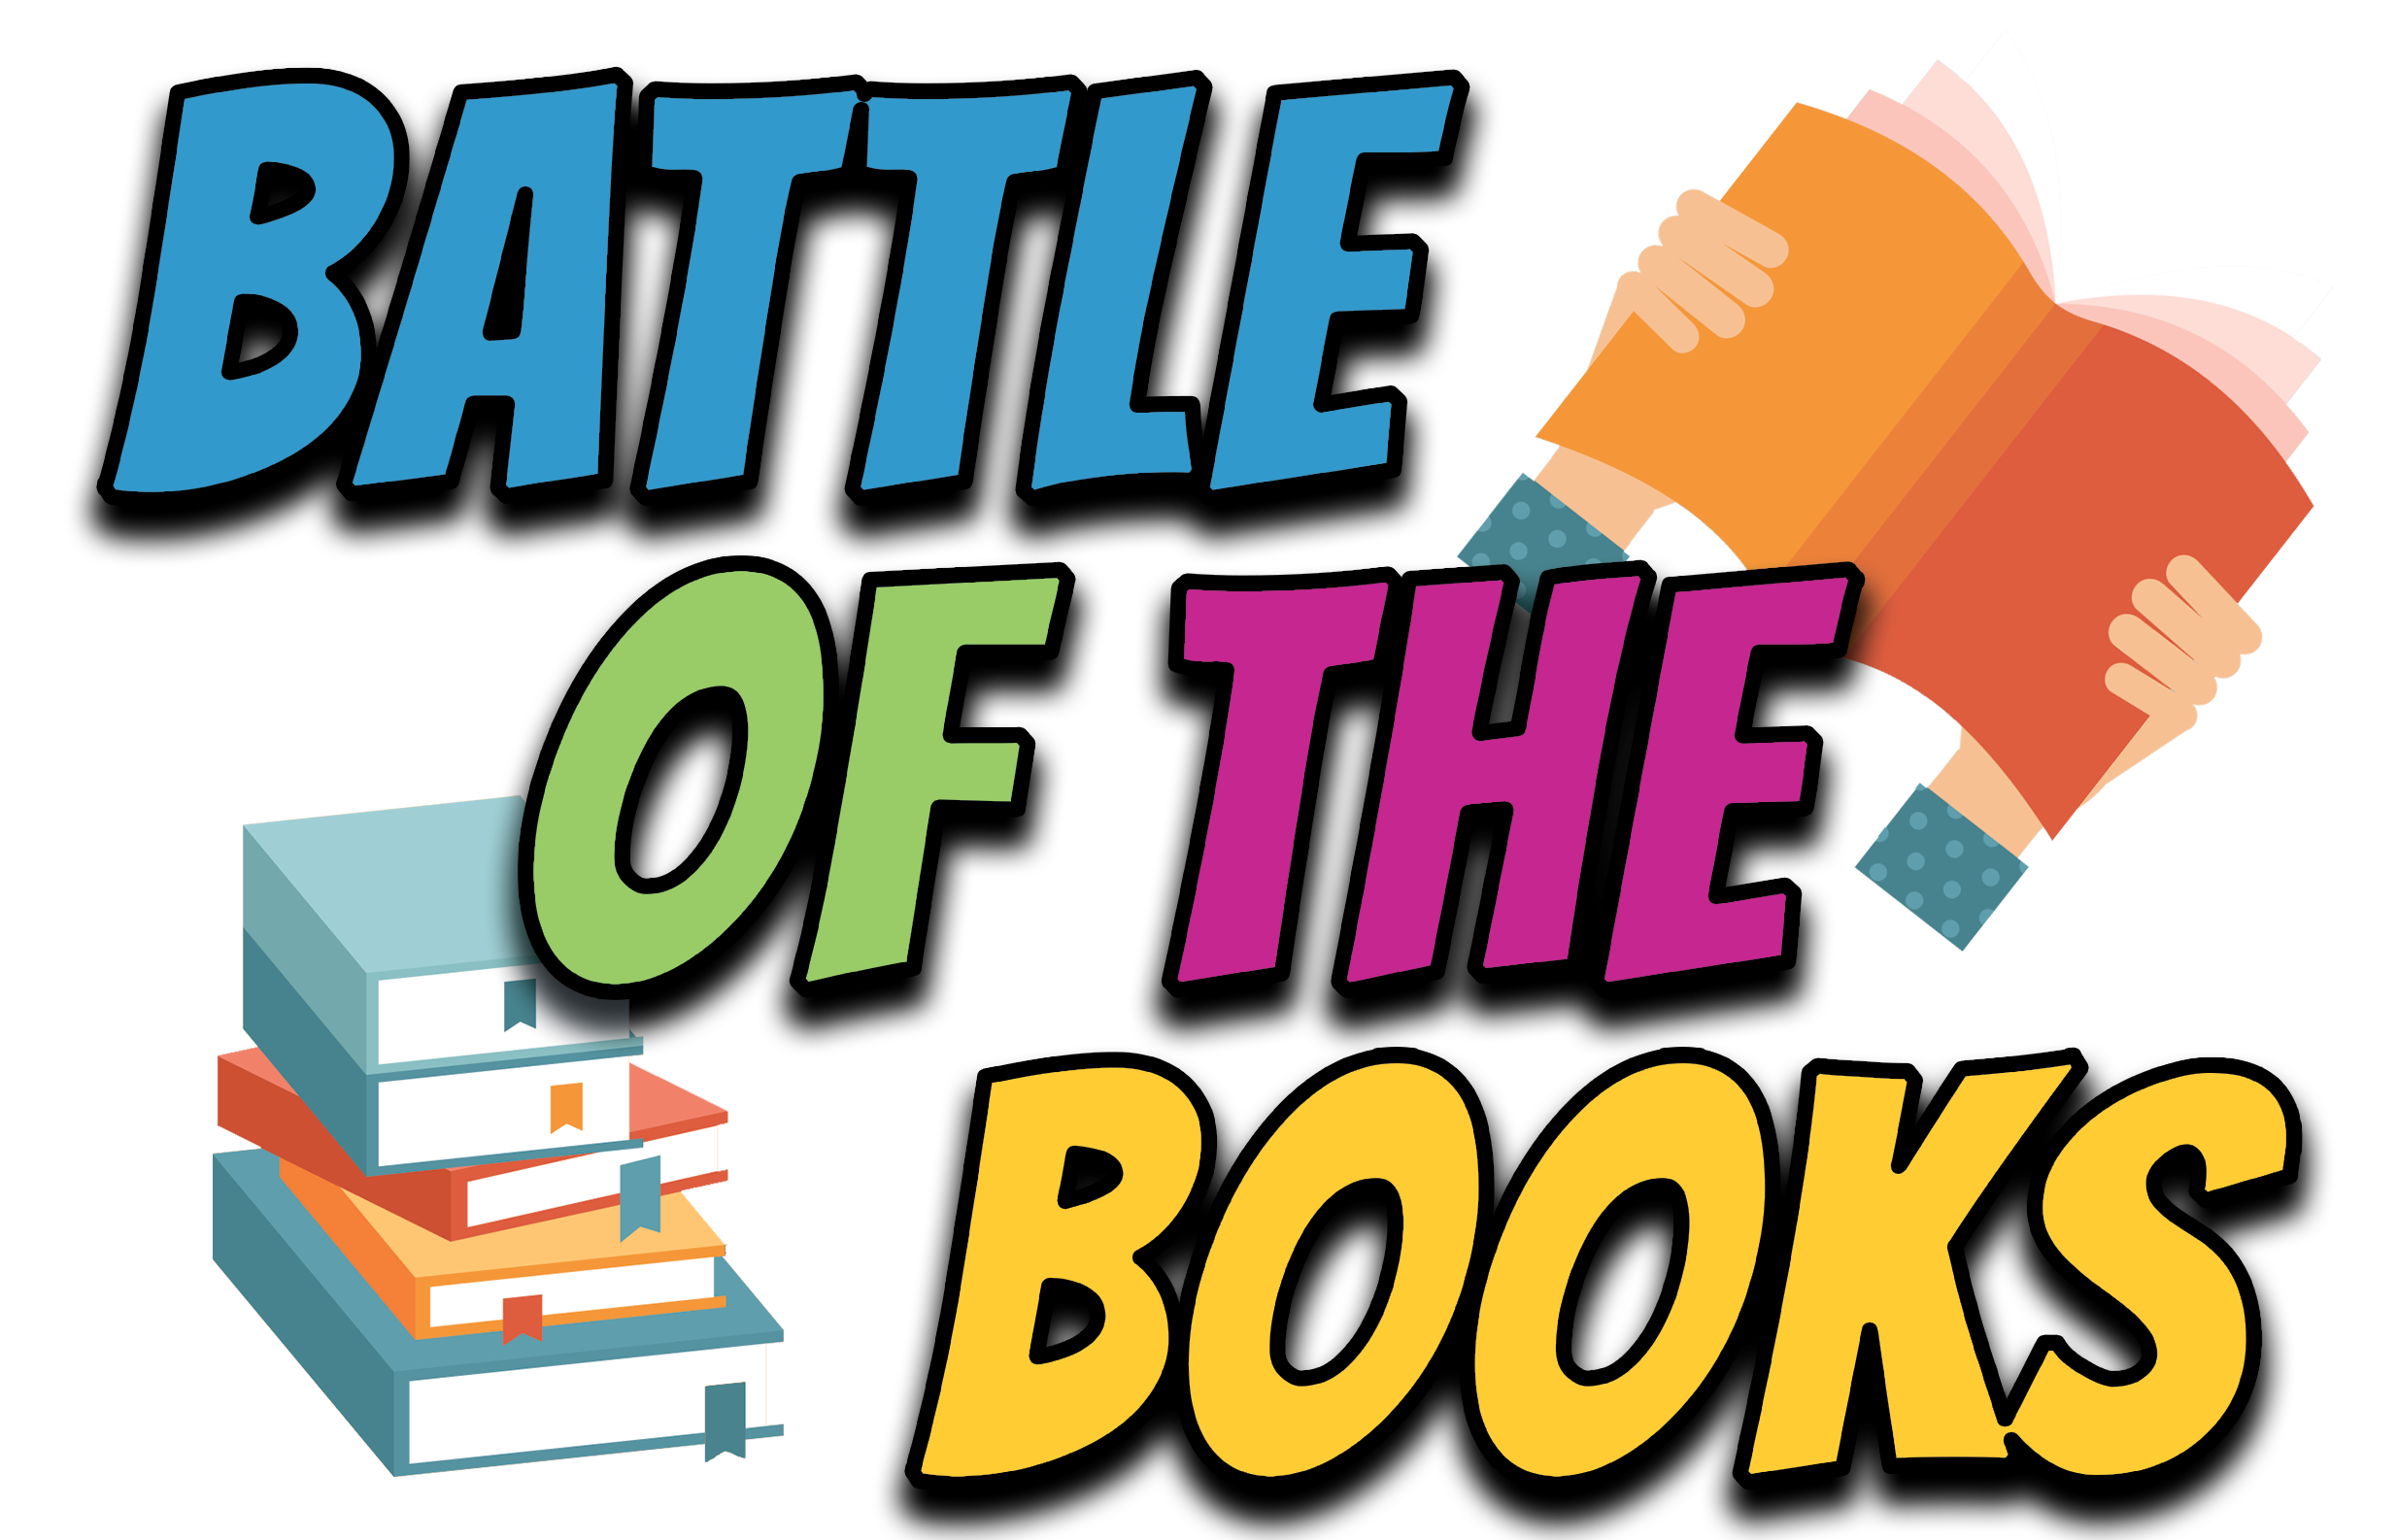 Battle of the Books - Teams of 5th-grade students read librarian-selected books and then compete in a fun Quiz Bowl-style competition at the library!